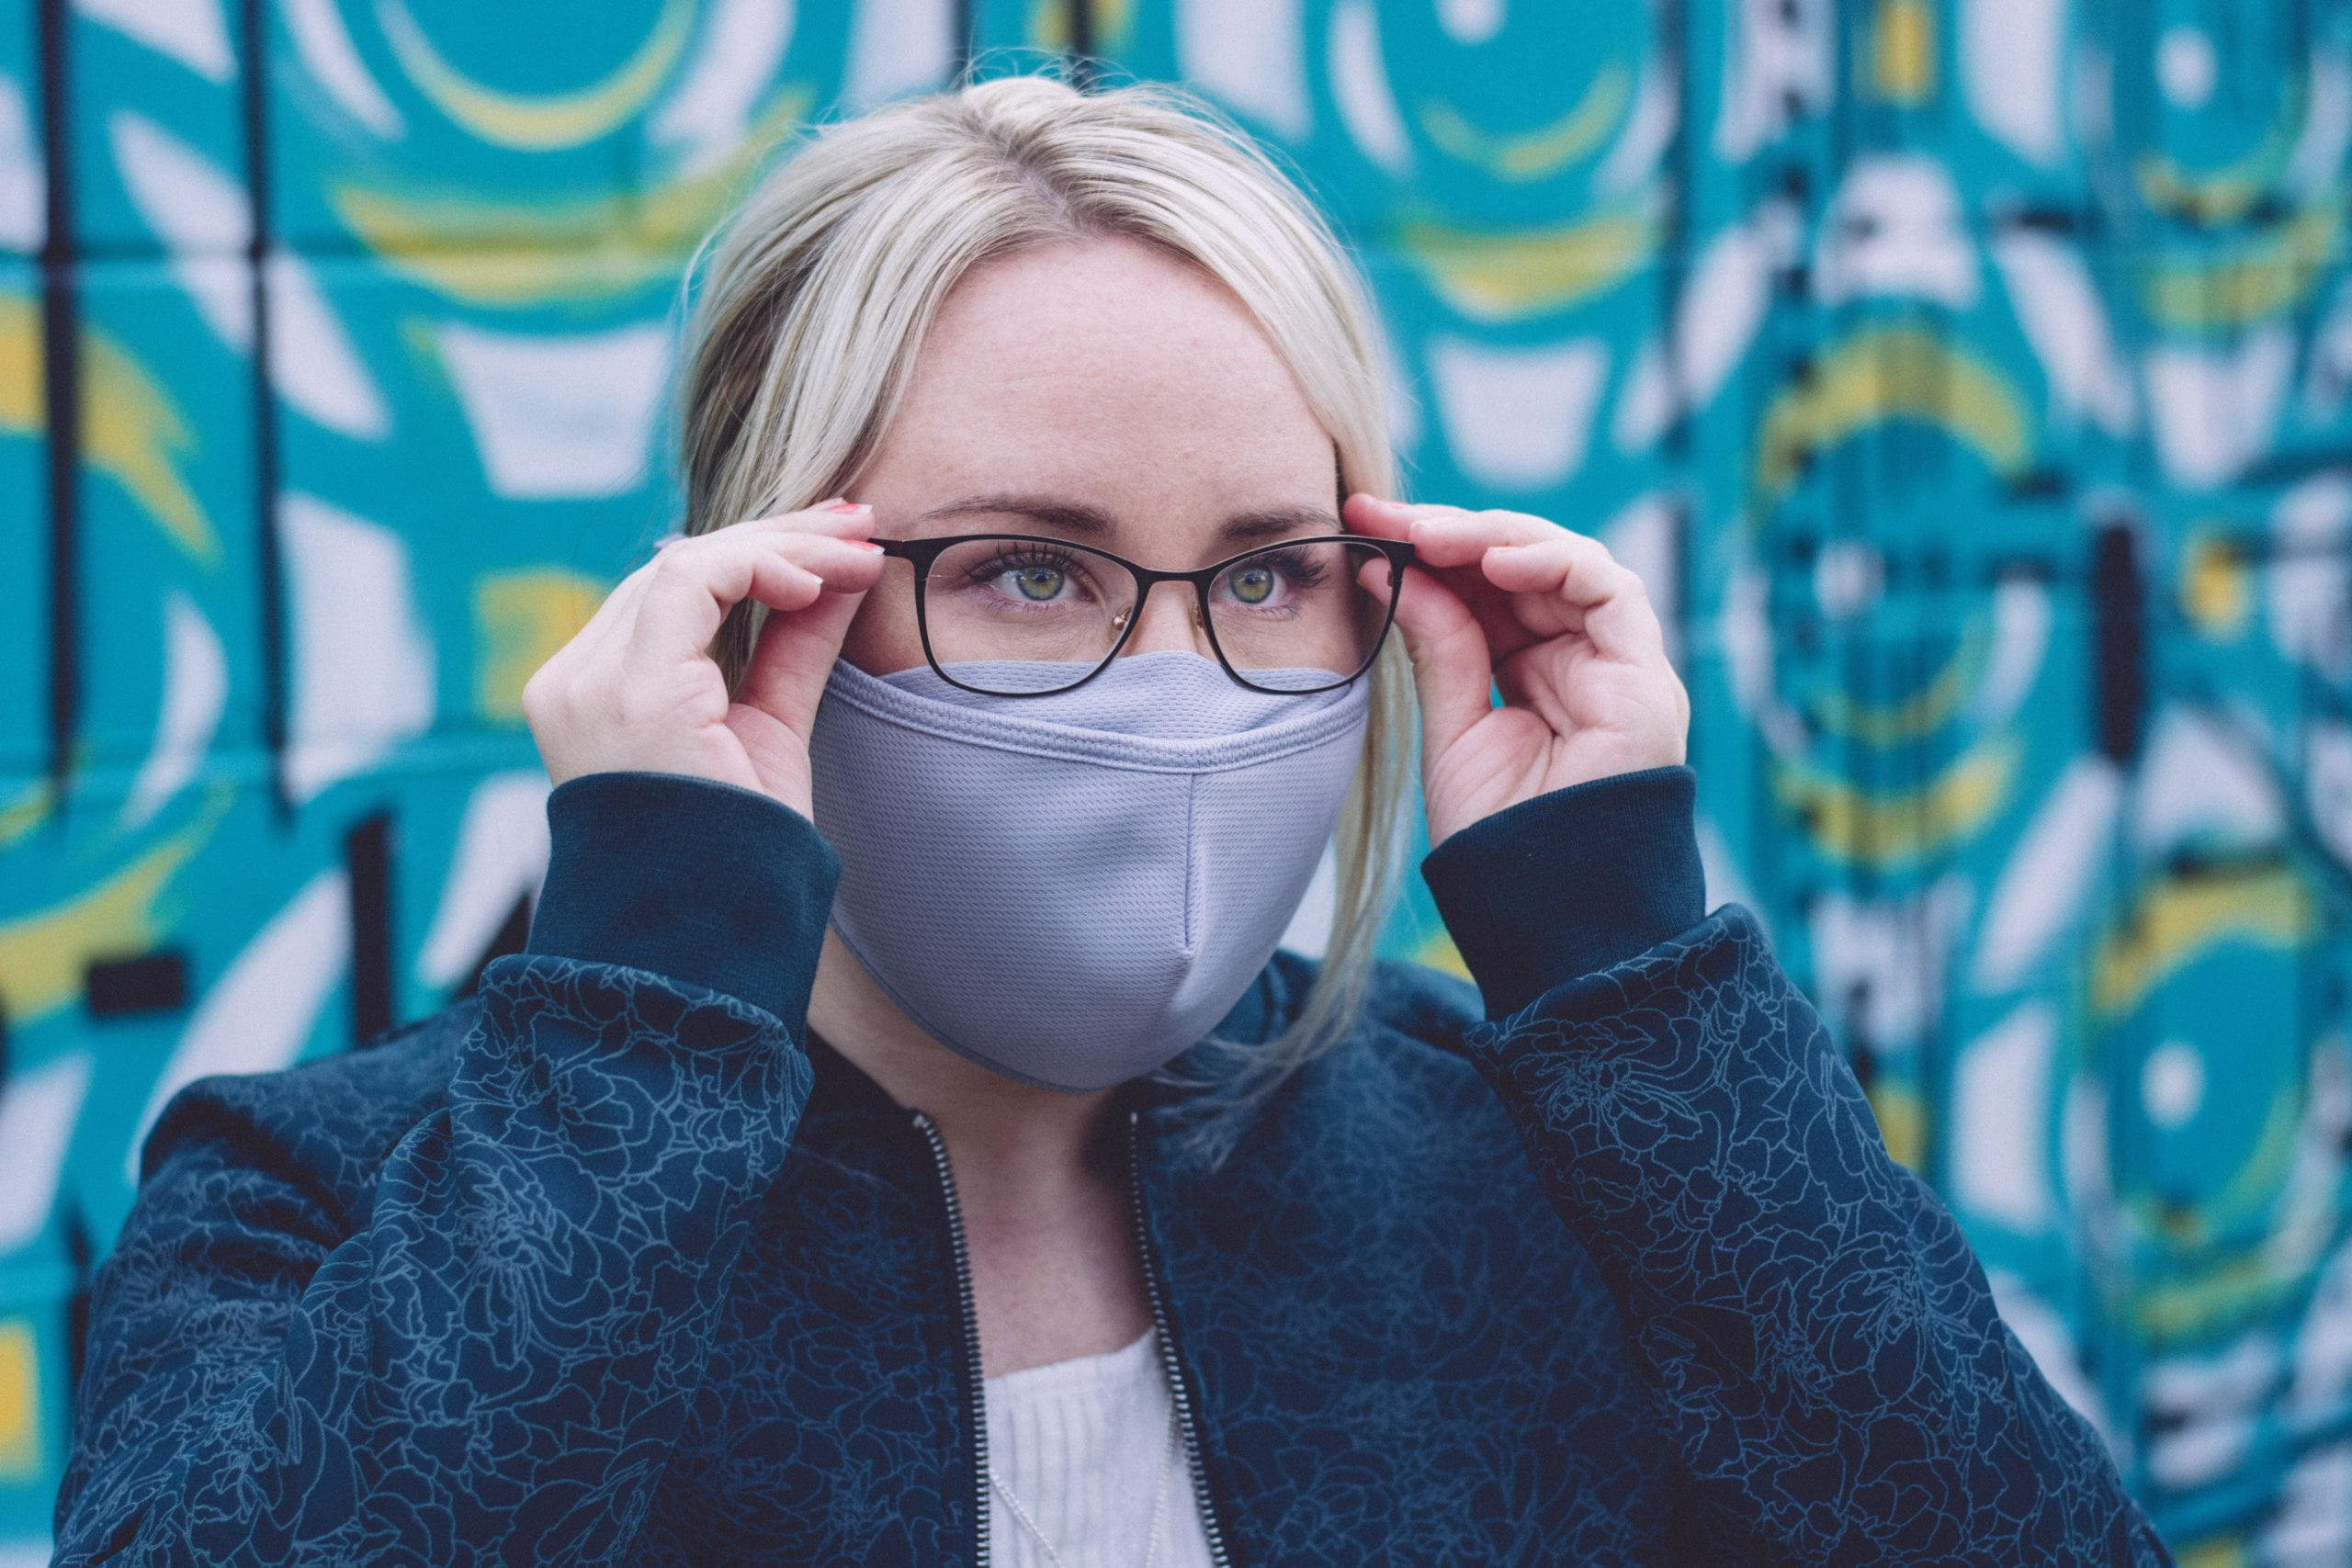 5 Ways To Prevent Foggy Glasses While Wearing A Face Mask